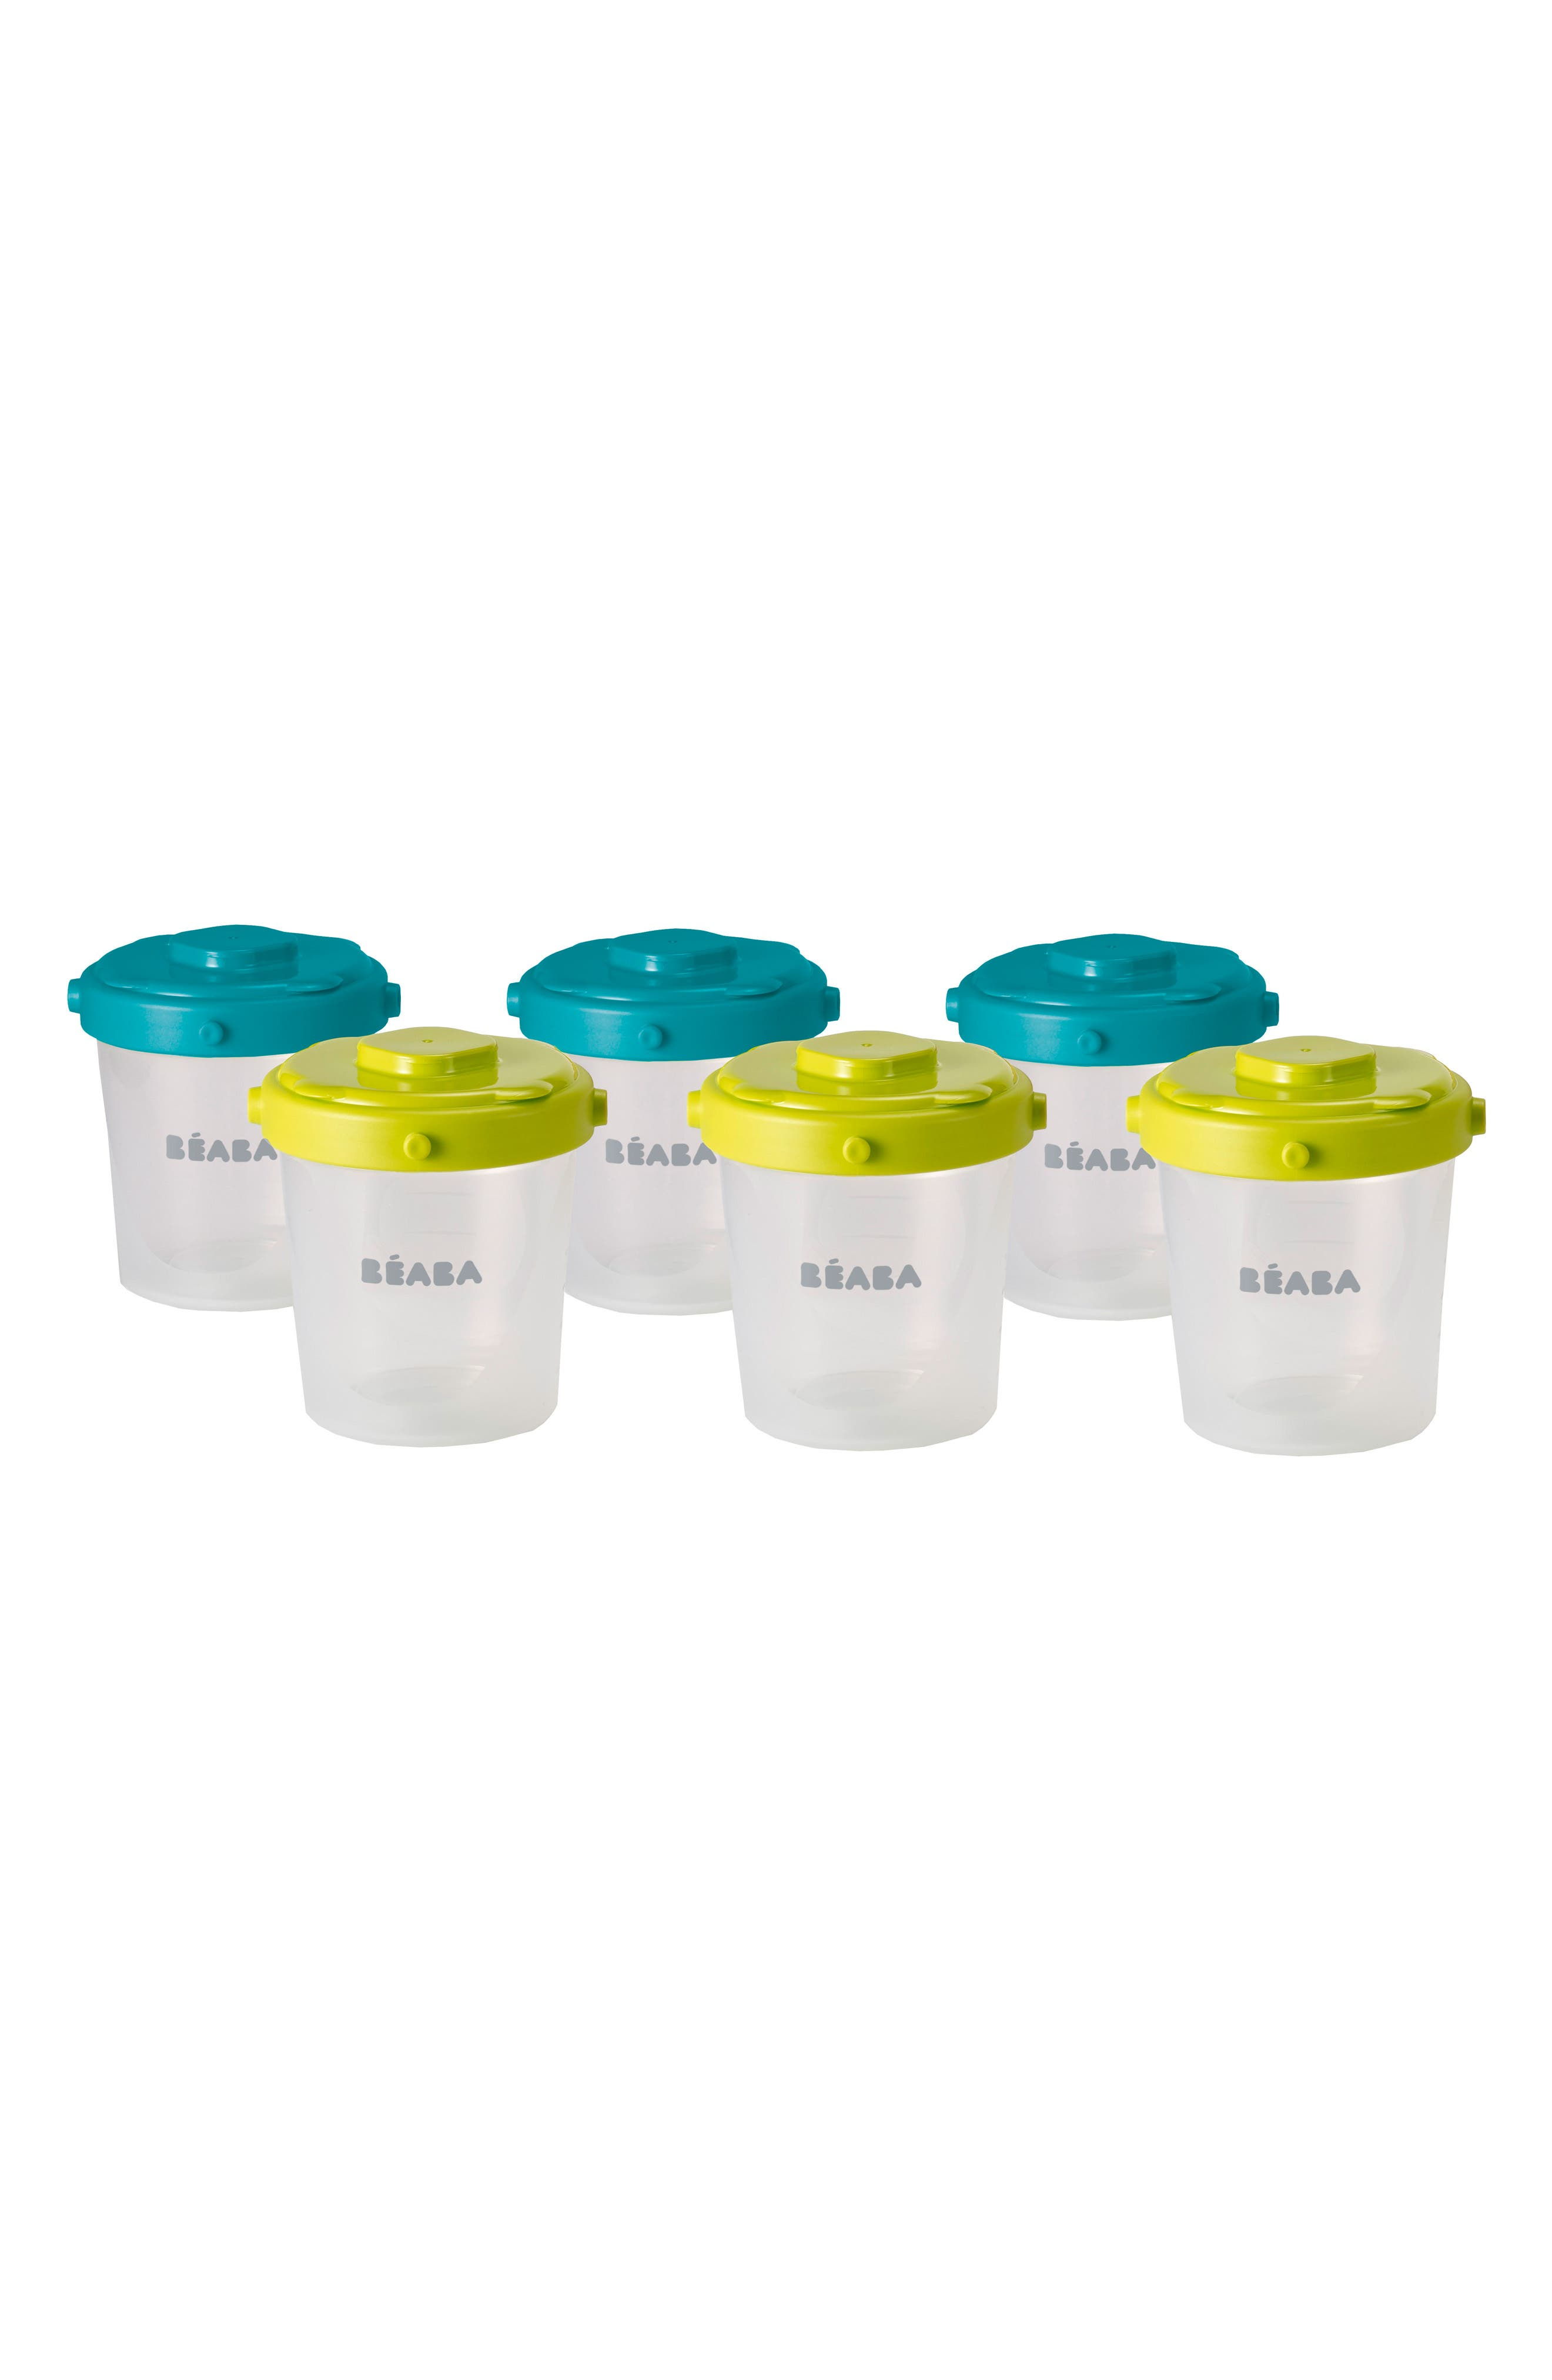 6-Pack Clip Portion Containers,                             Main thumbnail 1, color,                             Peacock